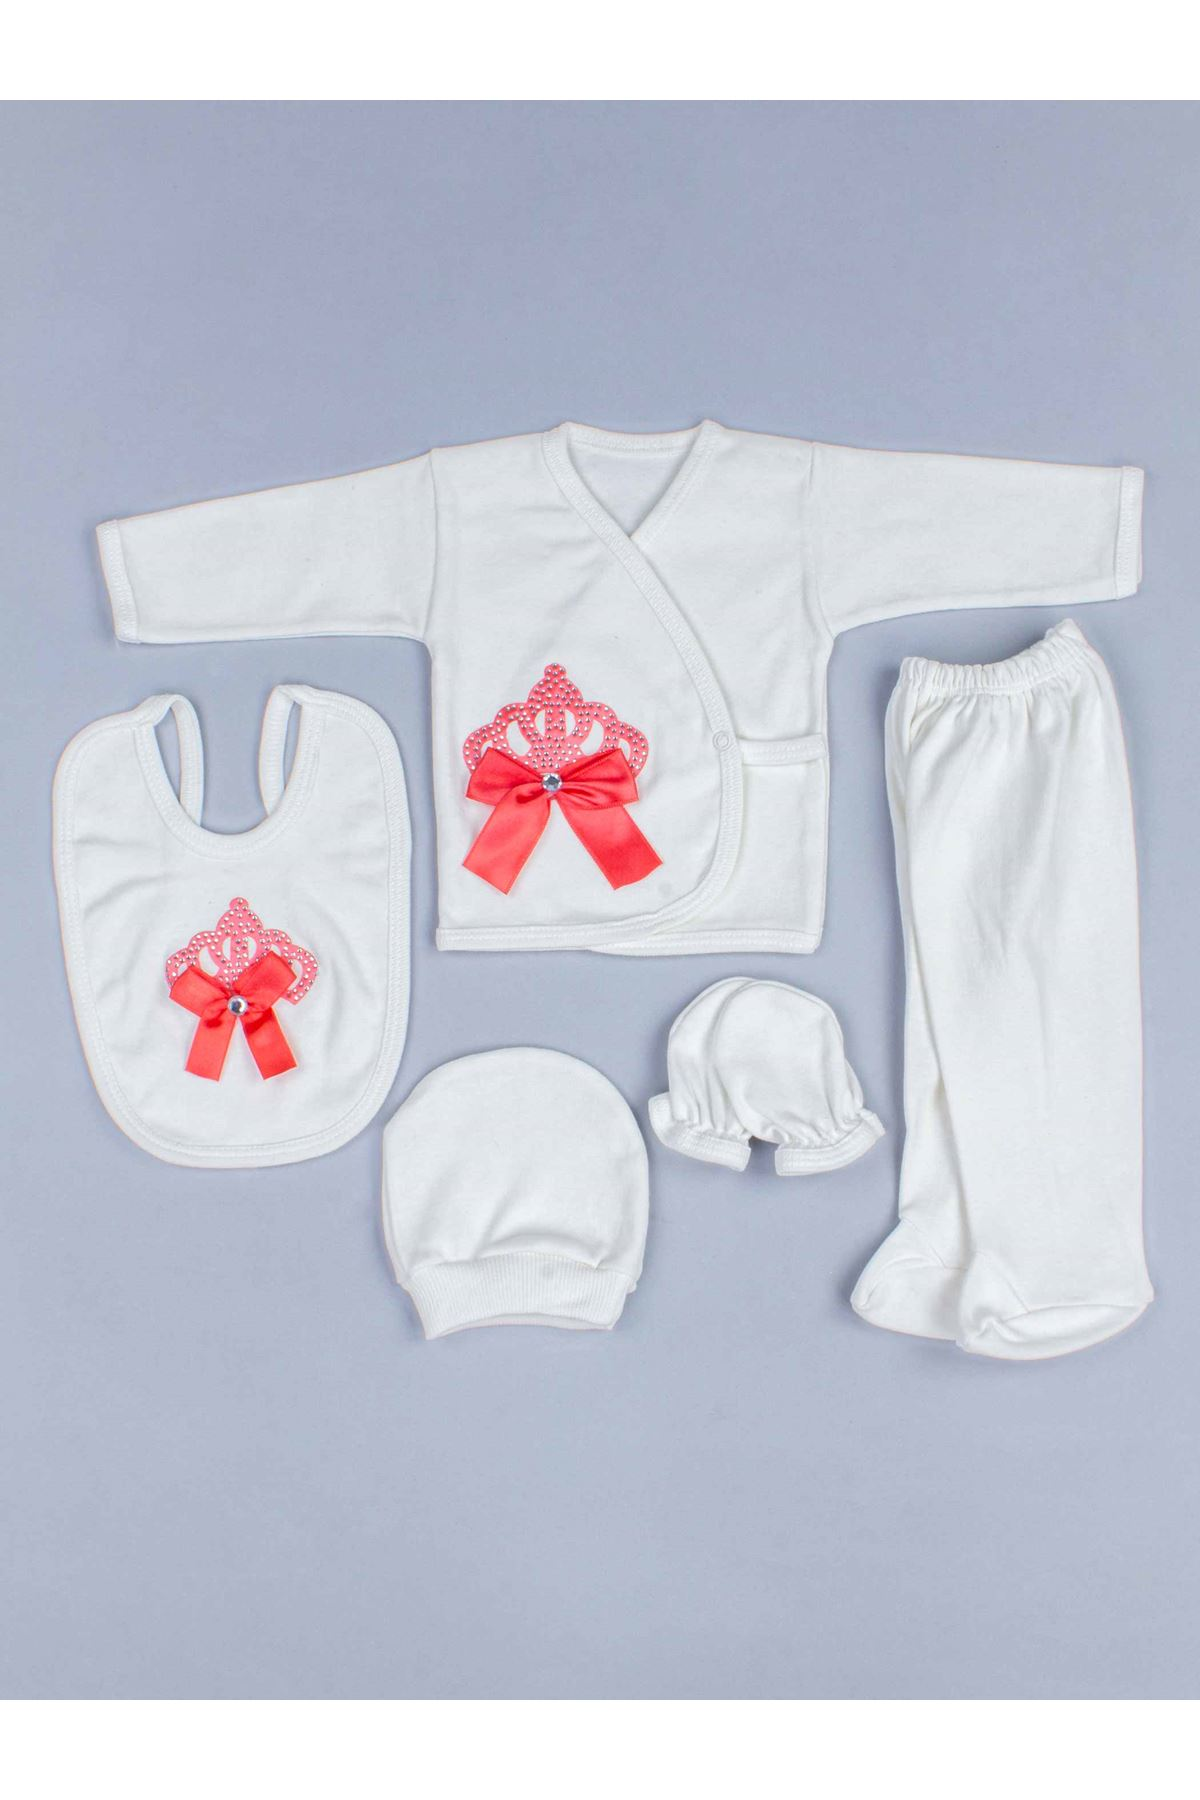 Red Baby Rompers Girl Boy Newborn Clothes 5pcs Set King Queen Clothing Antiallergic Cotton Babies Types Hospital Outlet Types